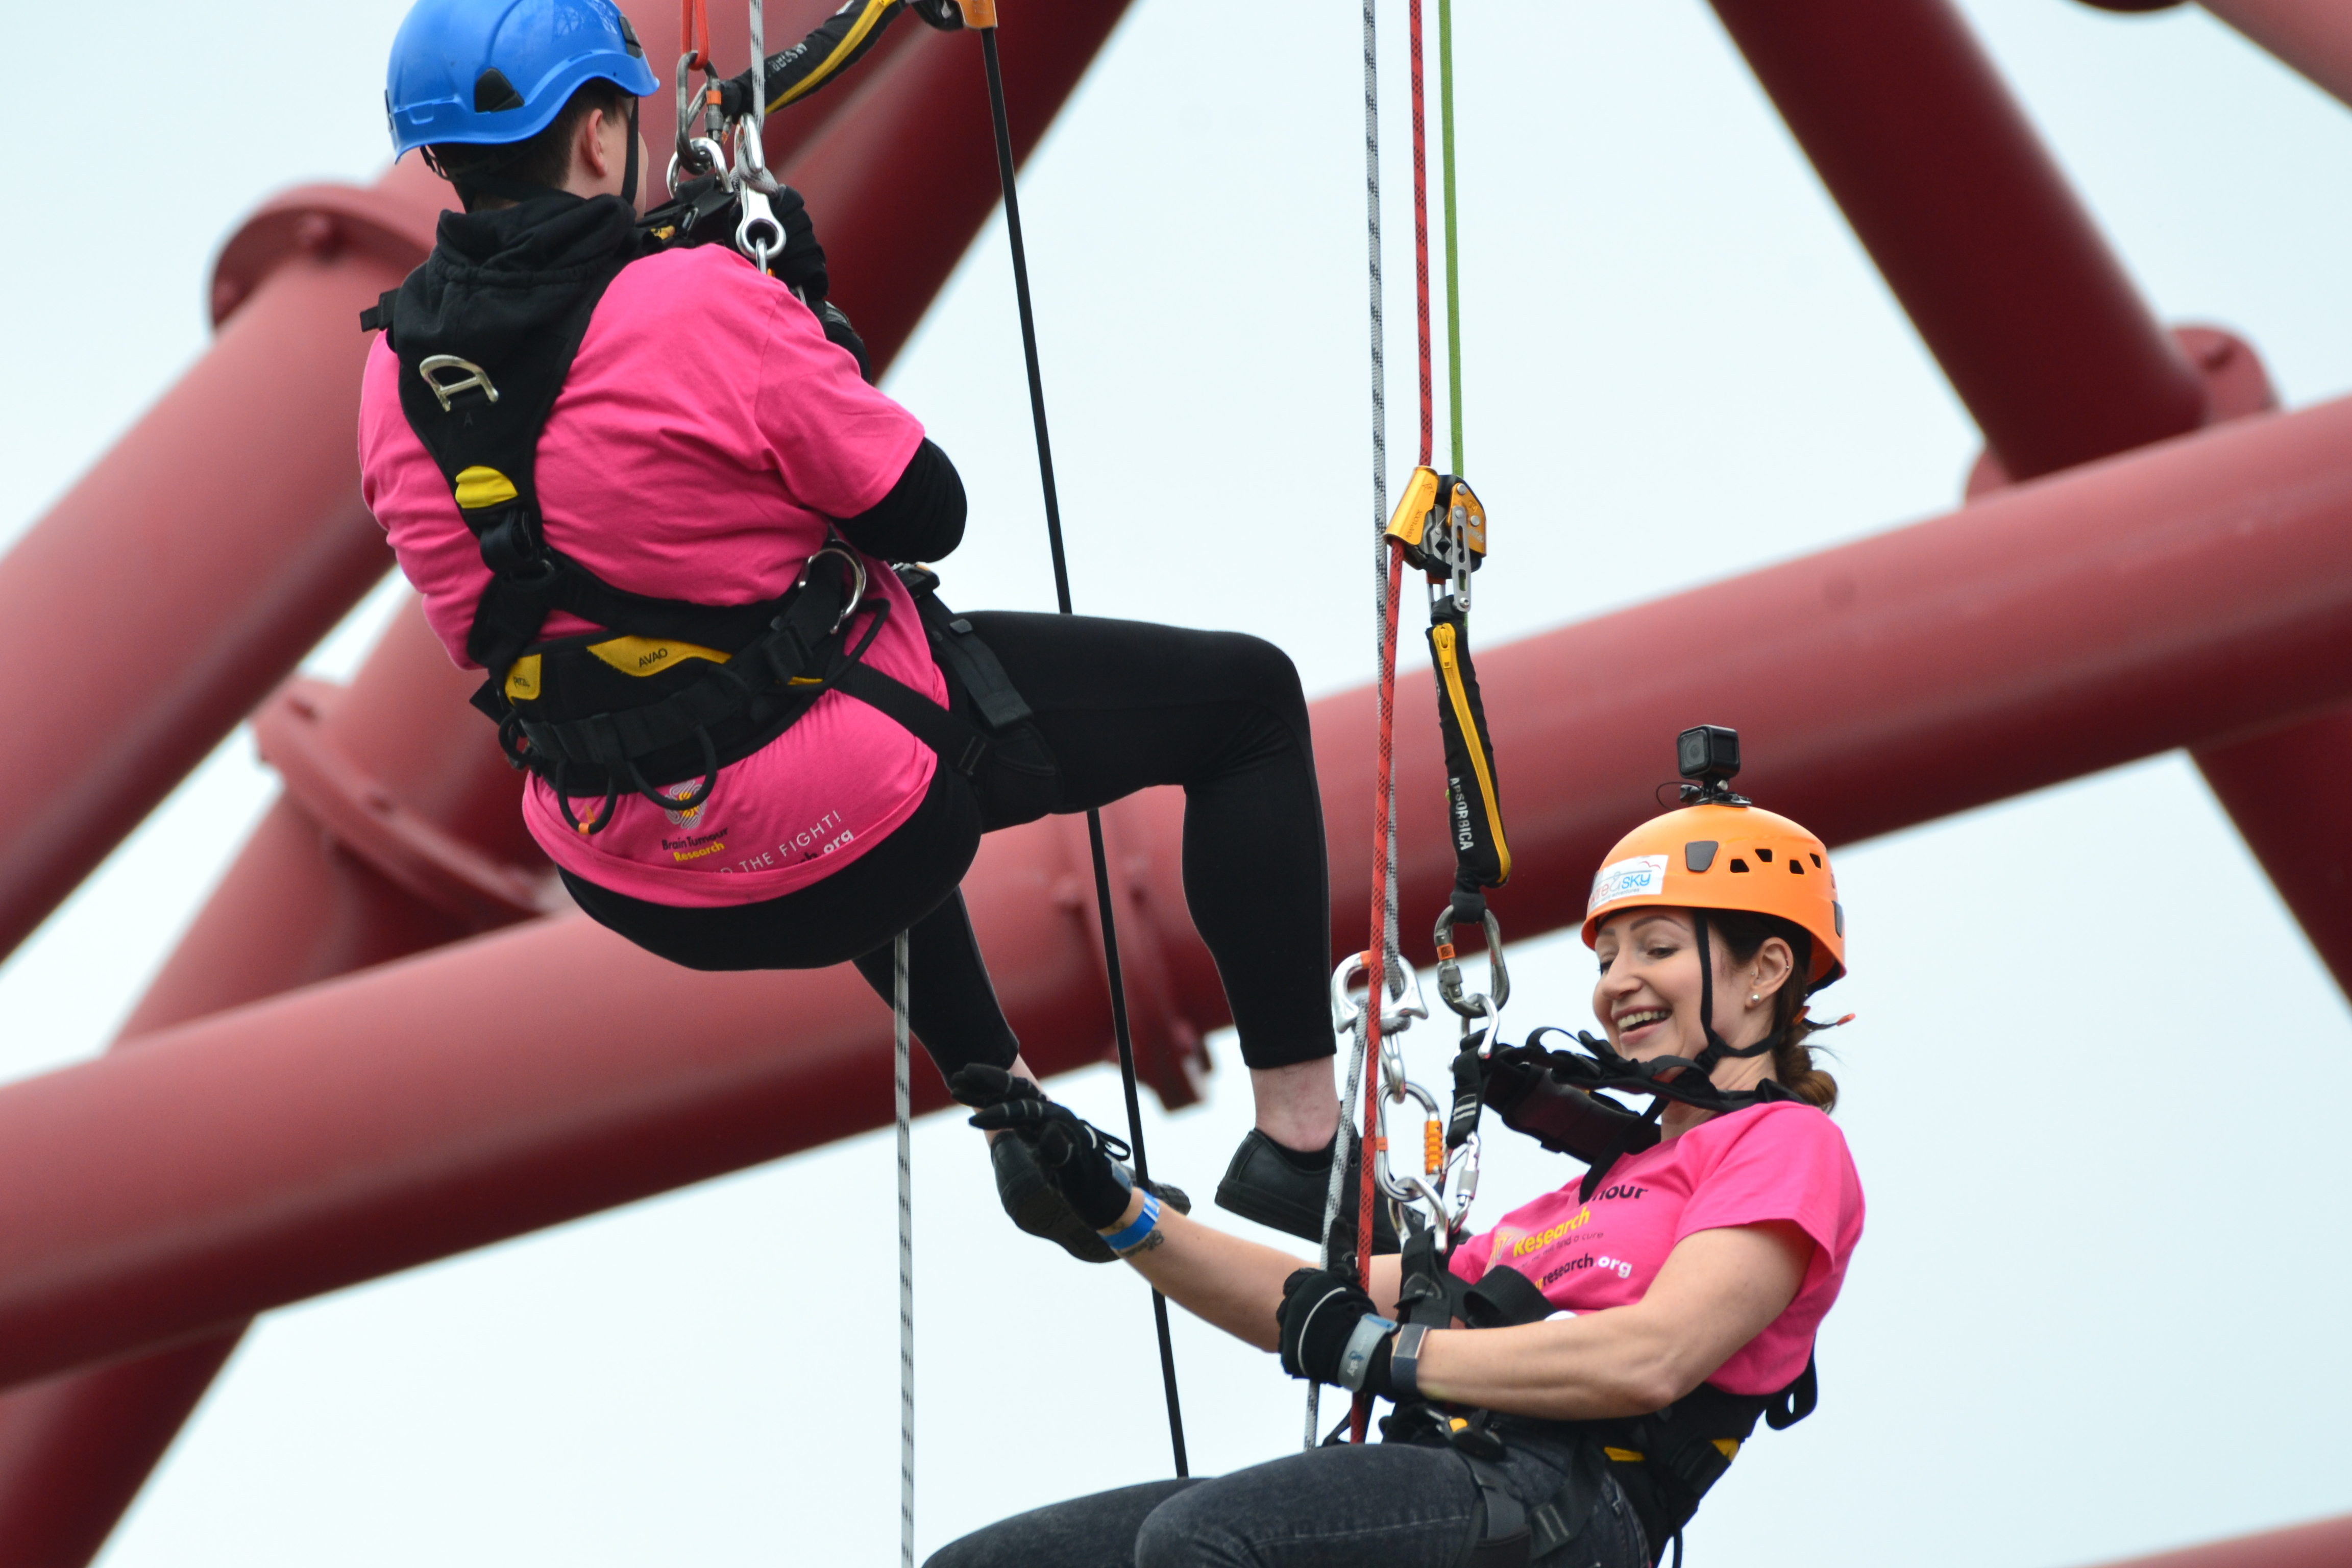 Elaine's Double Abseil Challenge Raises Awareness For Brain Tumour Charity